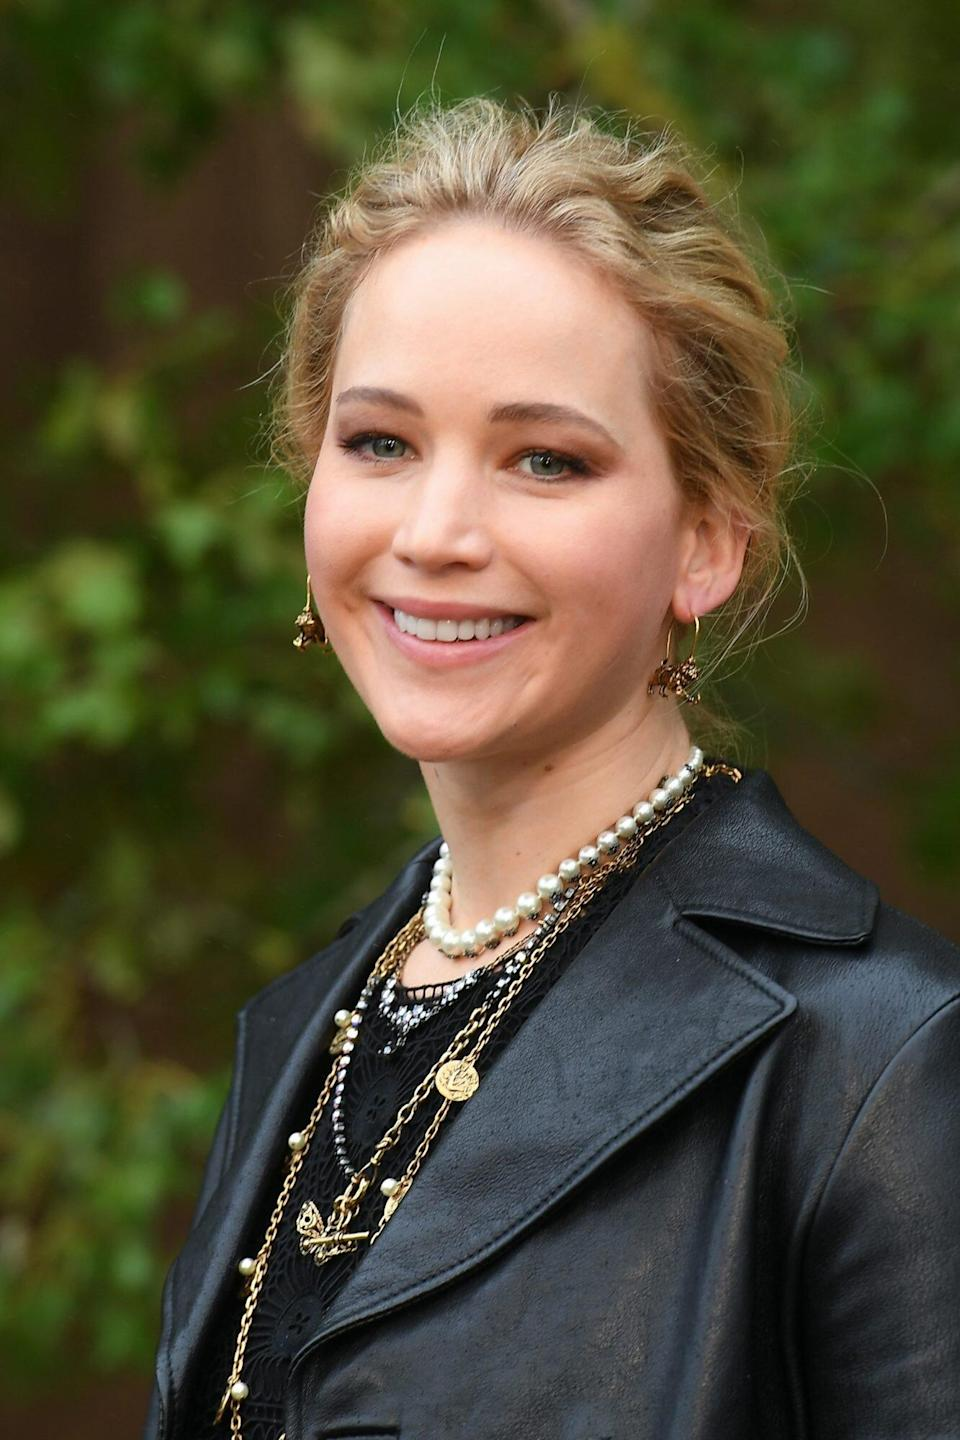 Jennifer Lawrence Said Donald Trump Made Her Reconsider Her Political Views